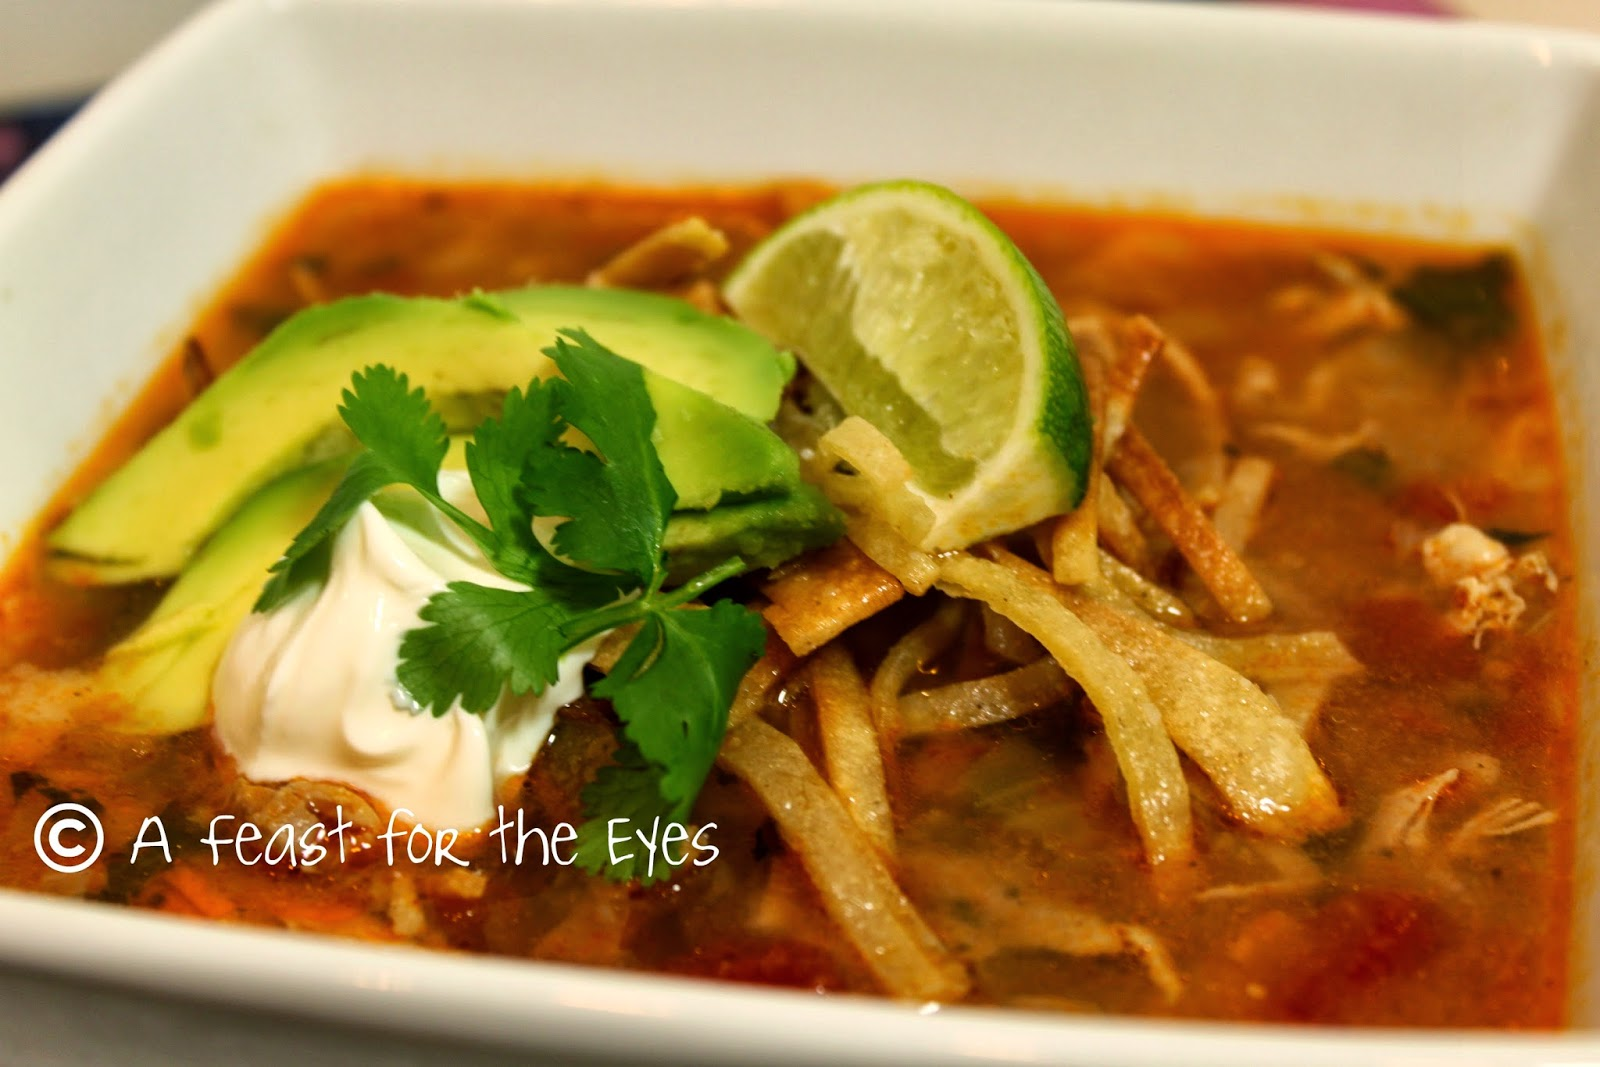 Feast for the Eyes: Chicken & Tortilla Soup - Mexican Comfort Food